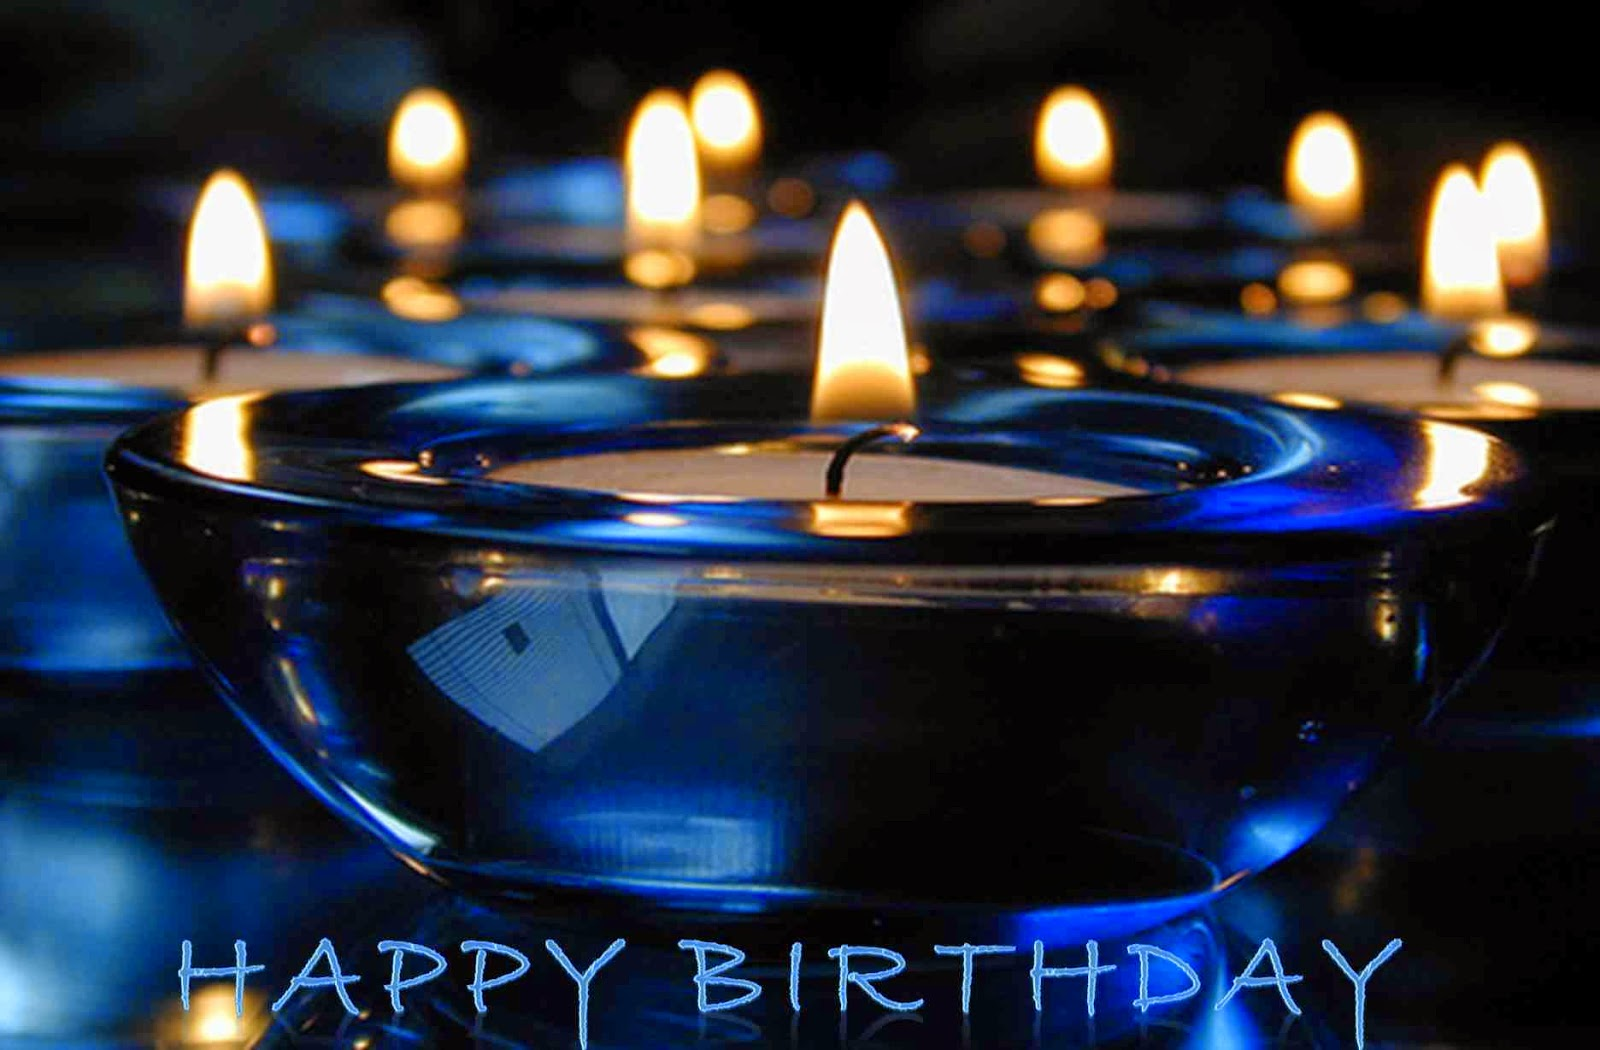 january birthday wallpaper ; Happy-Birthday-Amazing-Candles-HD-Wallpaper